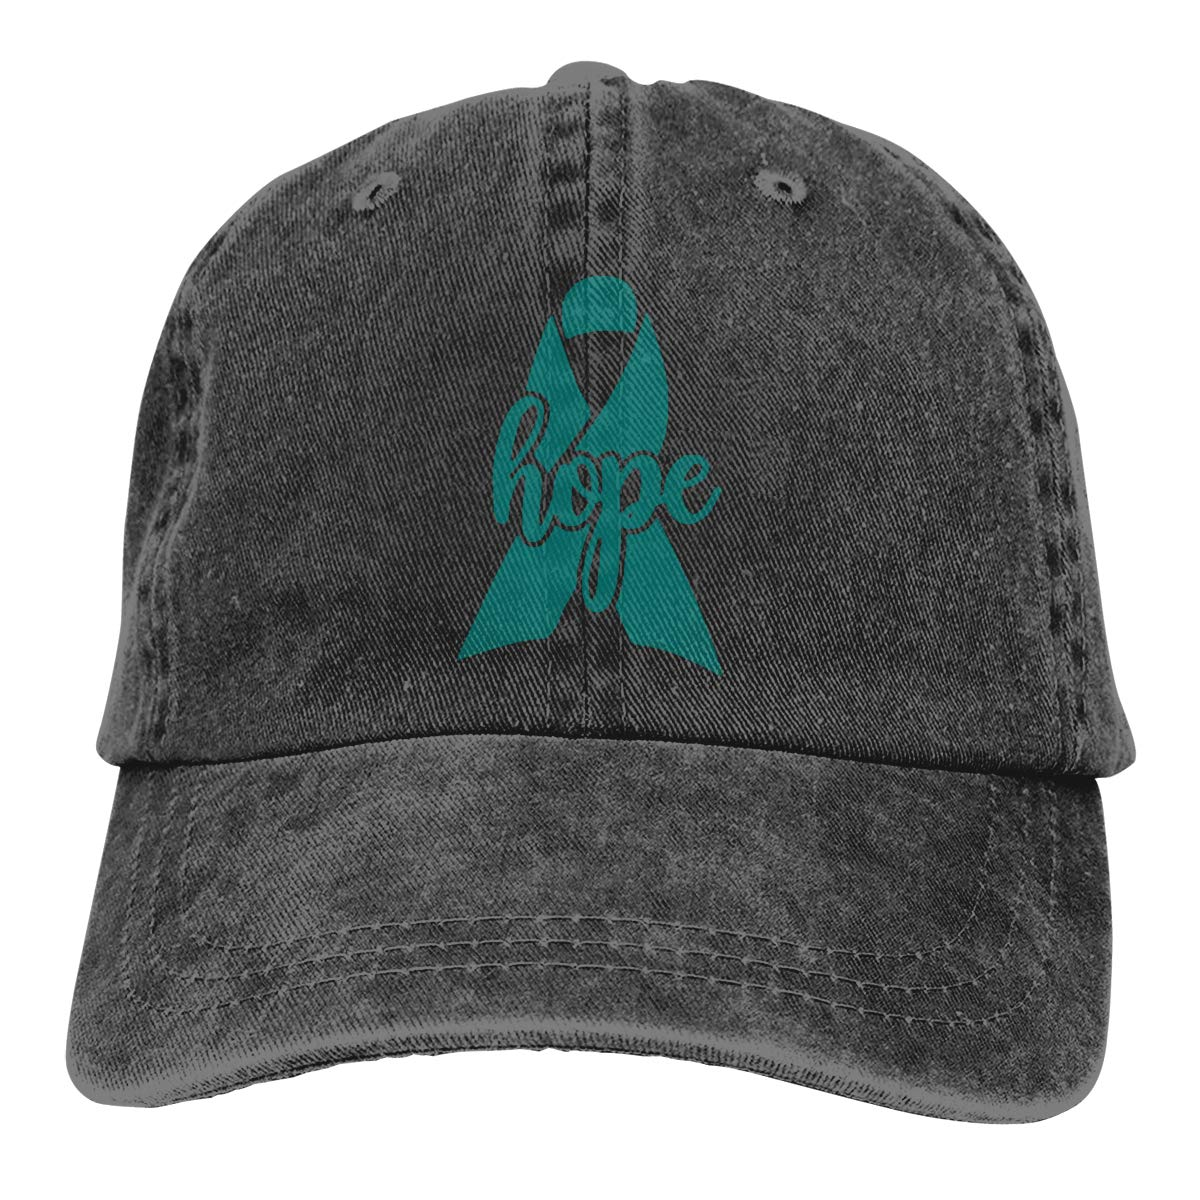 Hope Ovarian Cancer Awareness Ribbon Men Women Adjustable Baseball Caps Denim Fabric Hip Hop Cap Men S Baseball Caps Aliexpress